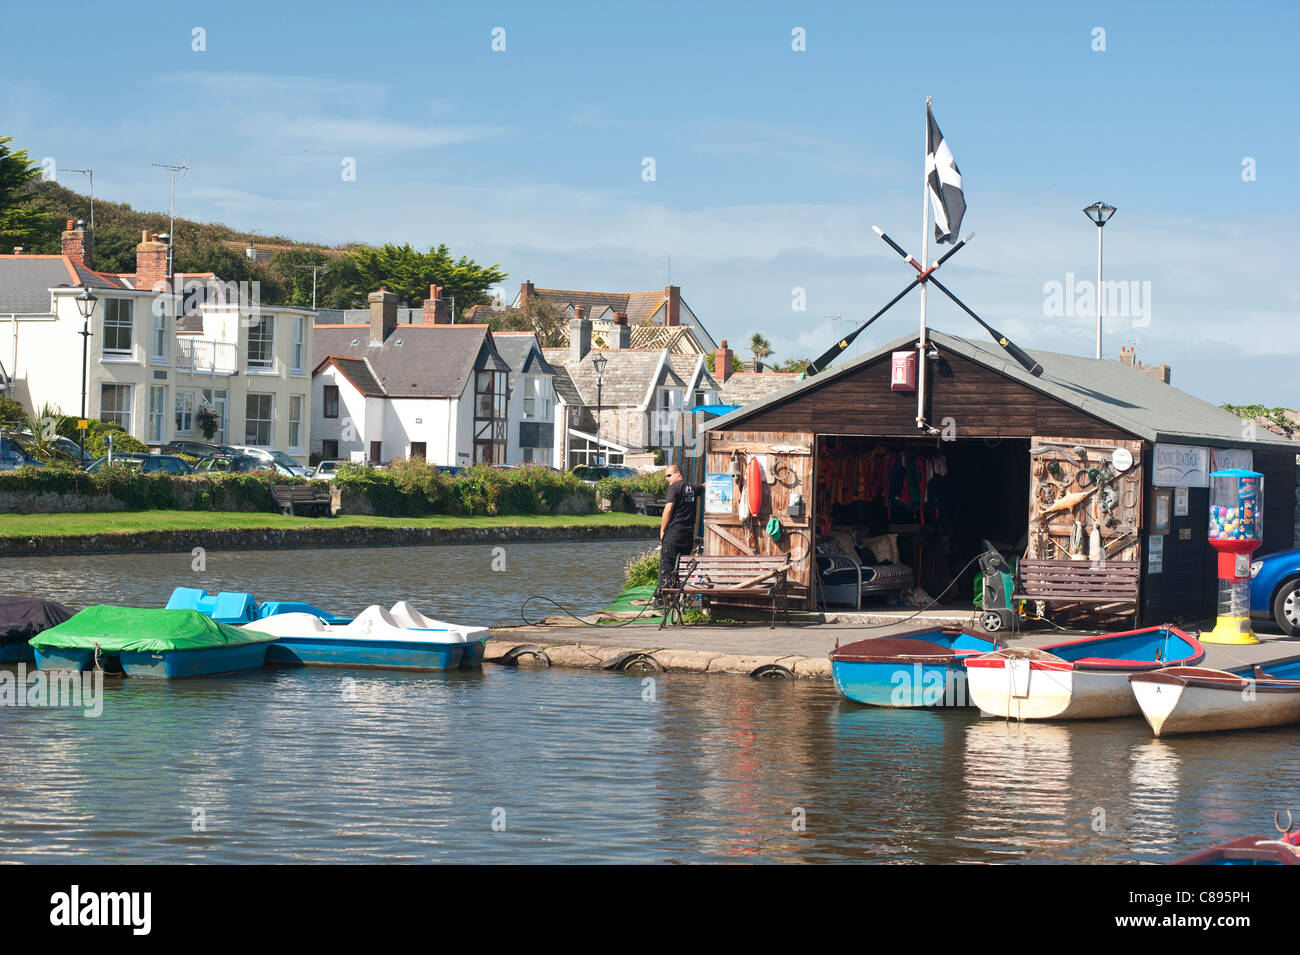 Boat House Bude Canal - Stock Image